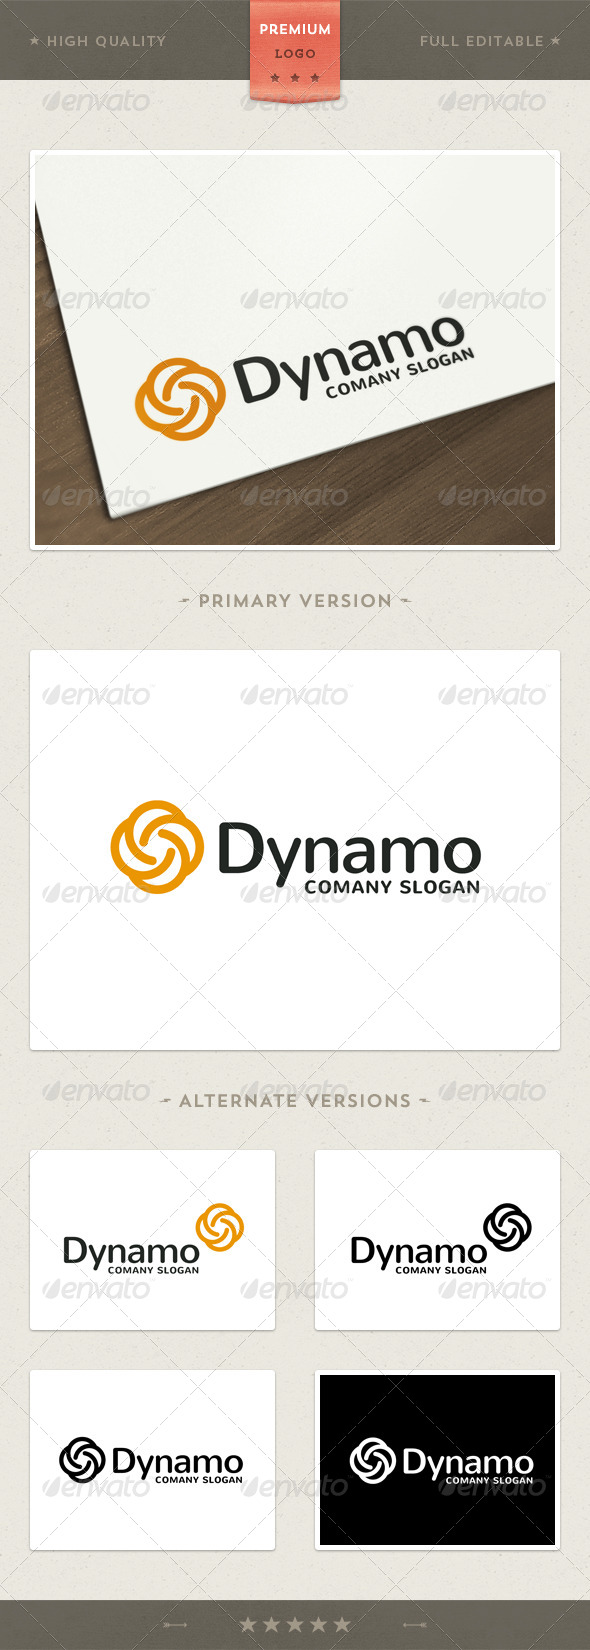 GraphicRiver Dynamo 4509083